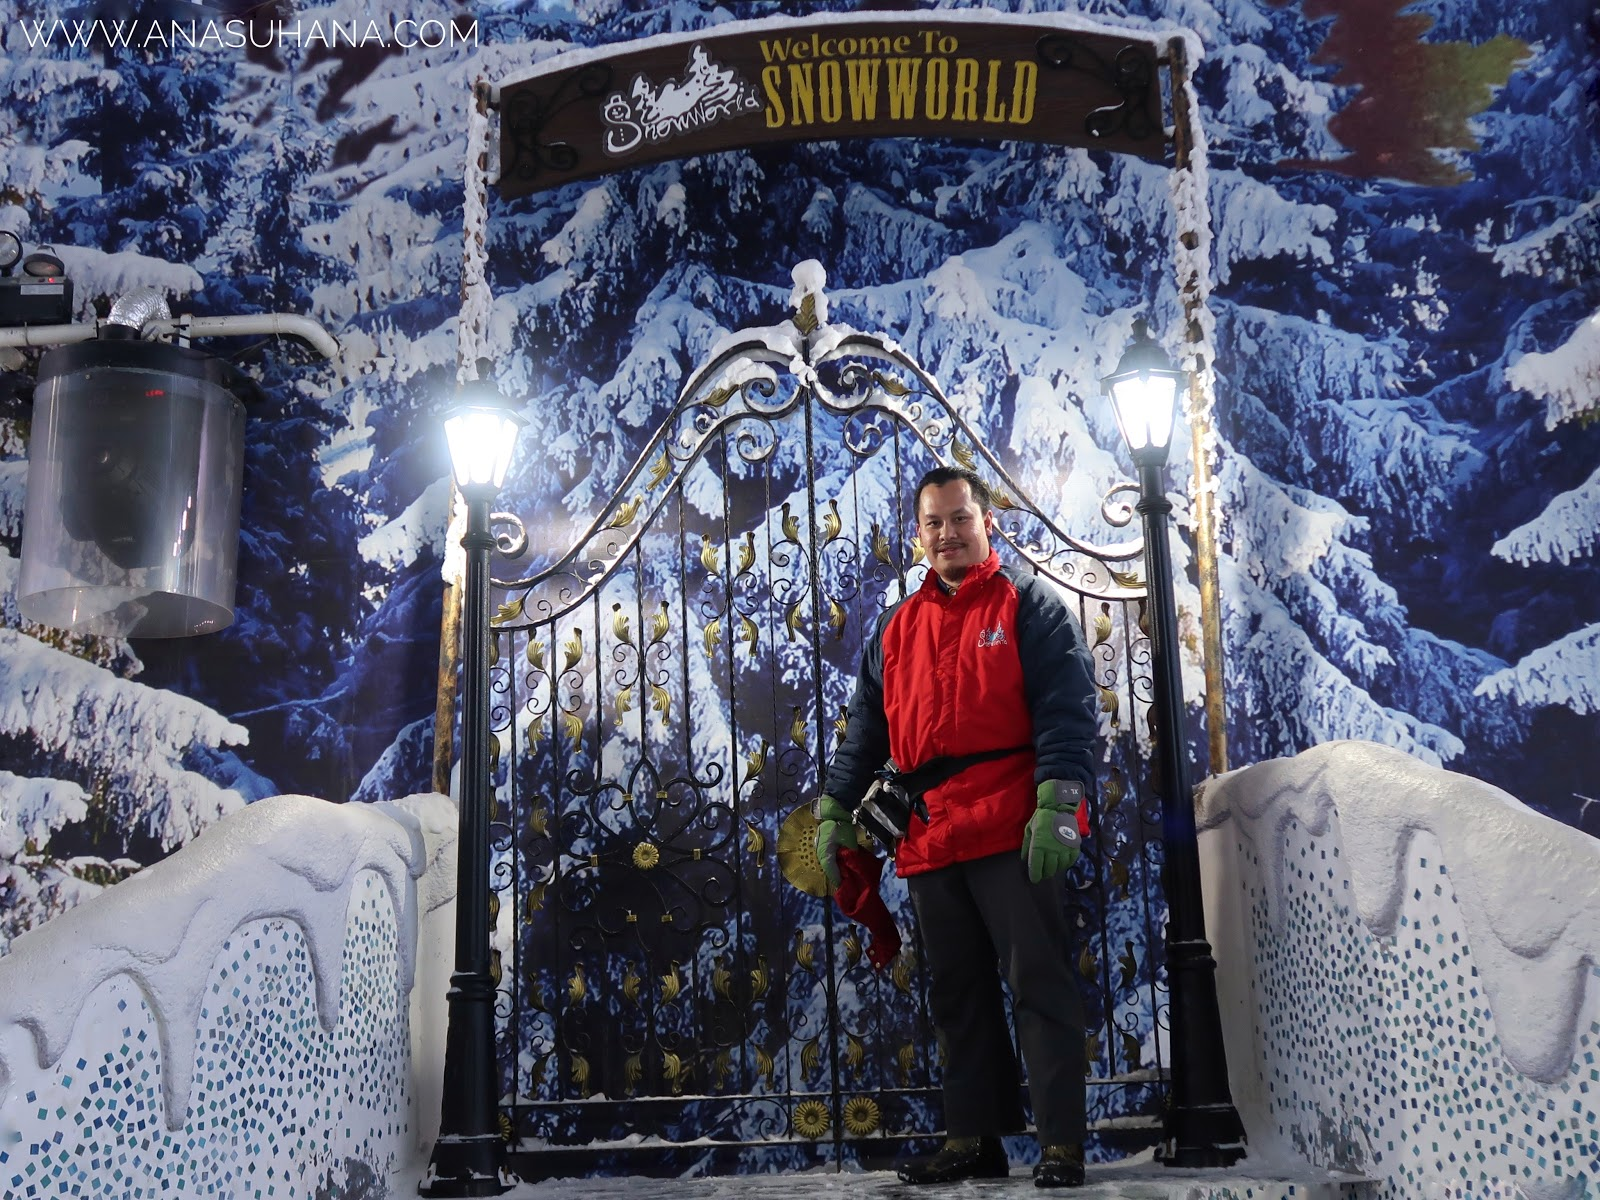 Snow World Resorts World Genting